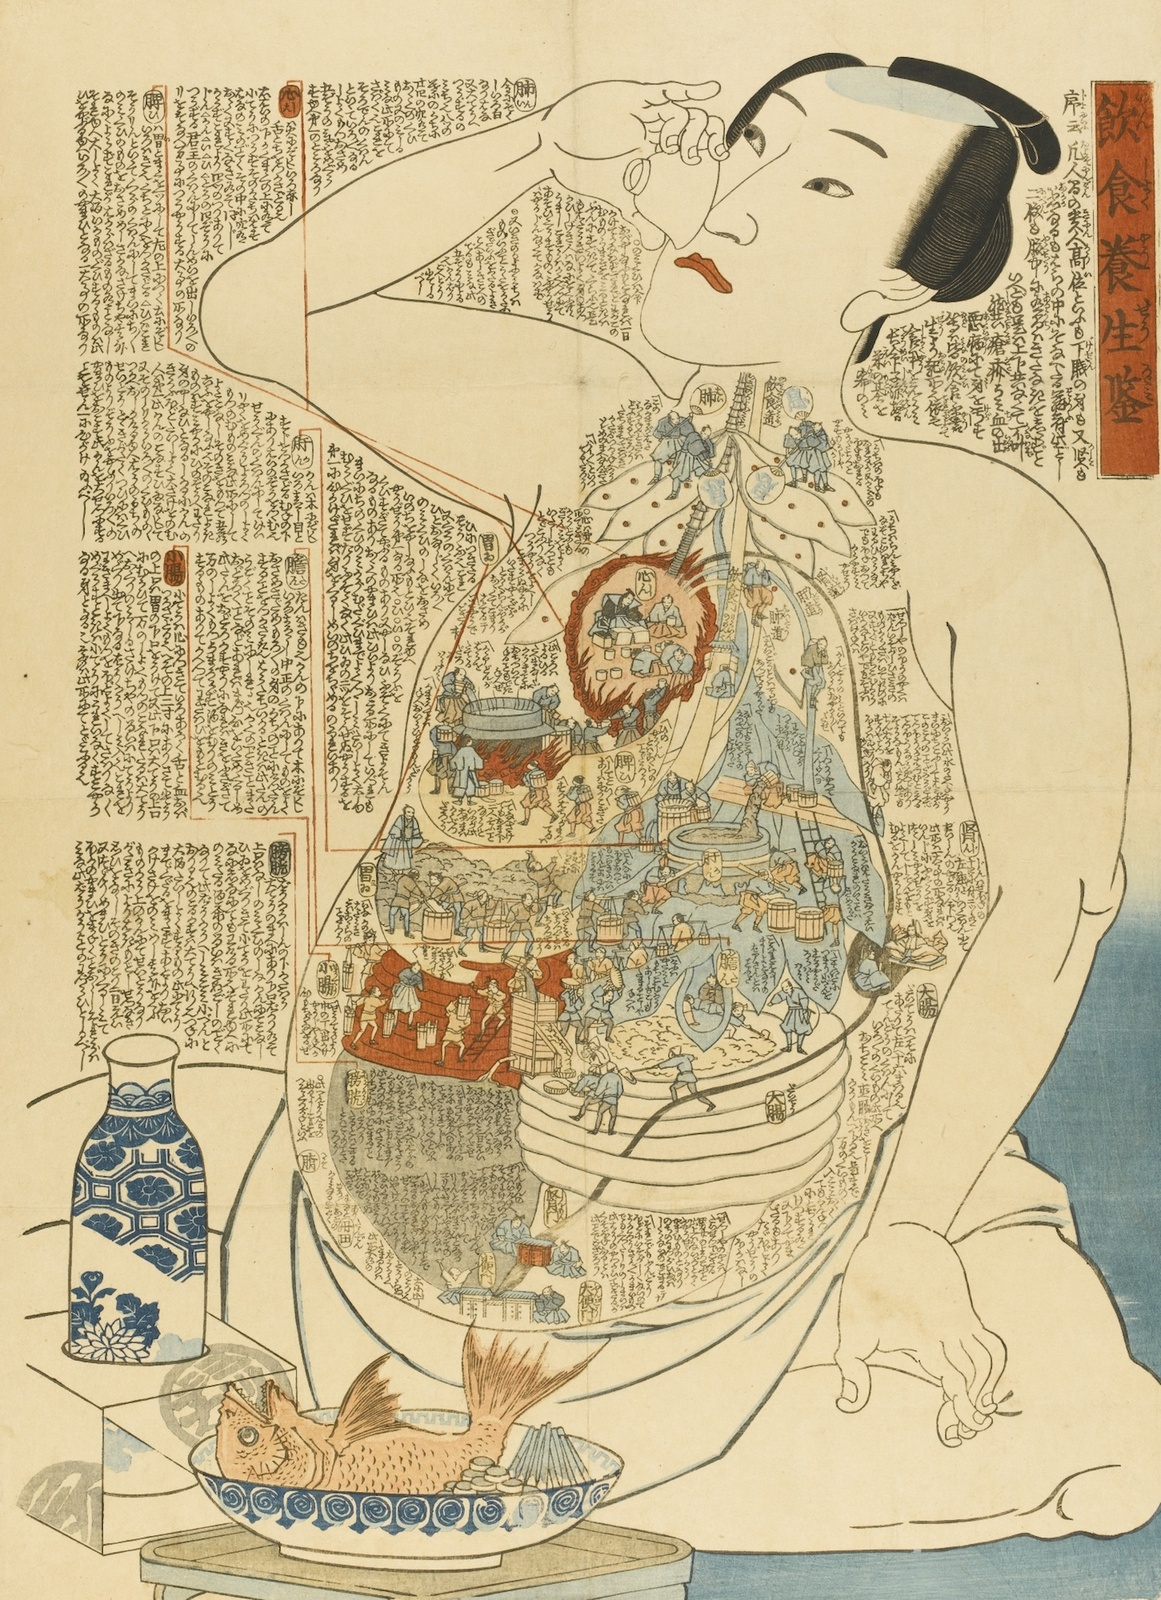 ukiyo-e internal bodily functions (1)